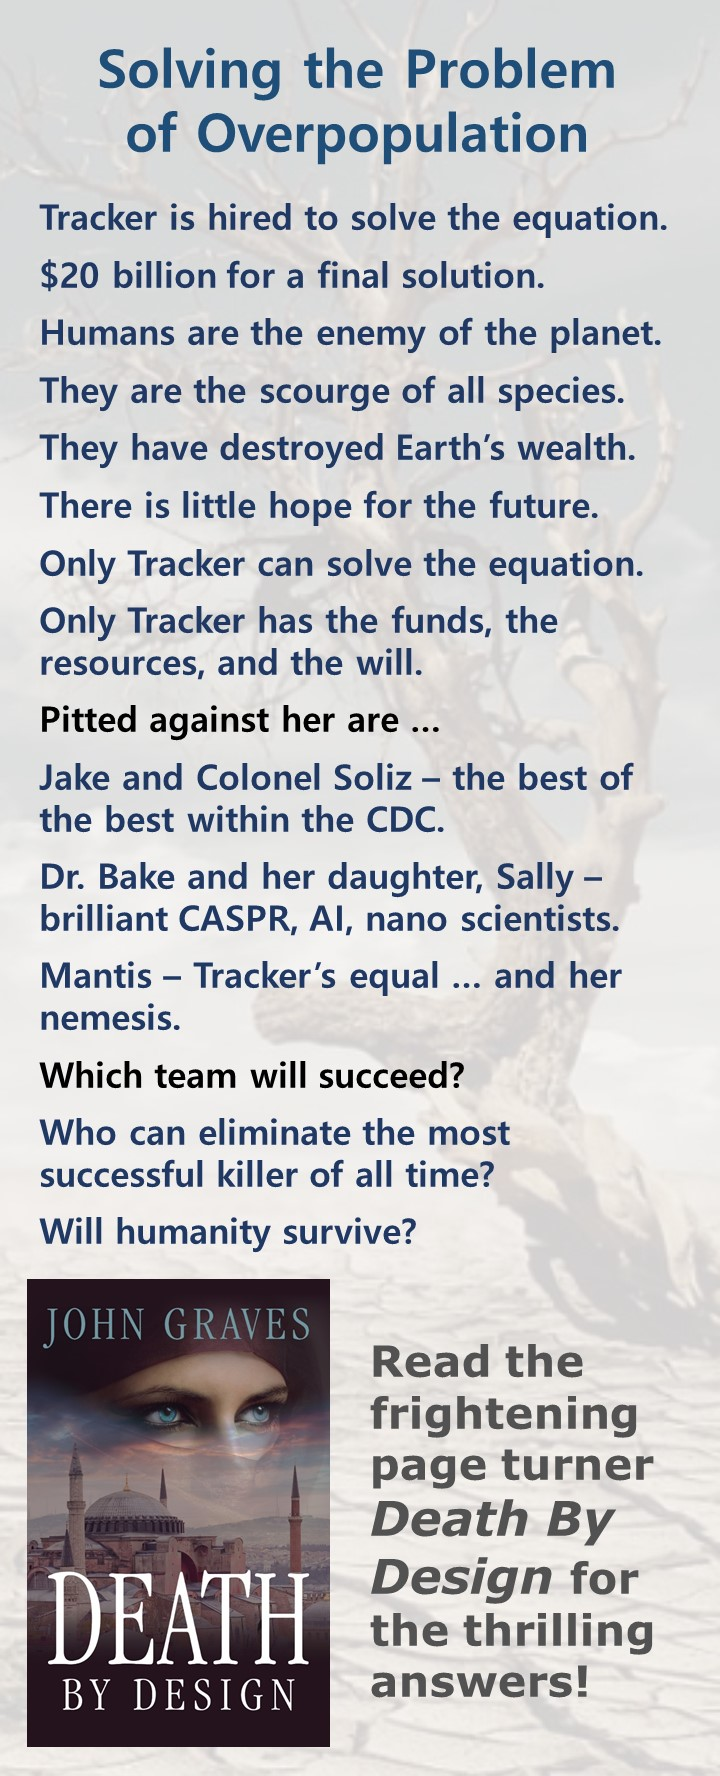 Can you create lists like the ones John Graves inserts into his tip-o-graphics to target readers of thrillers? In this graphic, he focuses on the solving the problem of overpopulation.